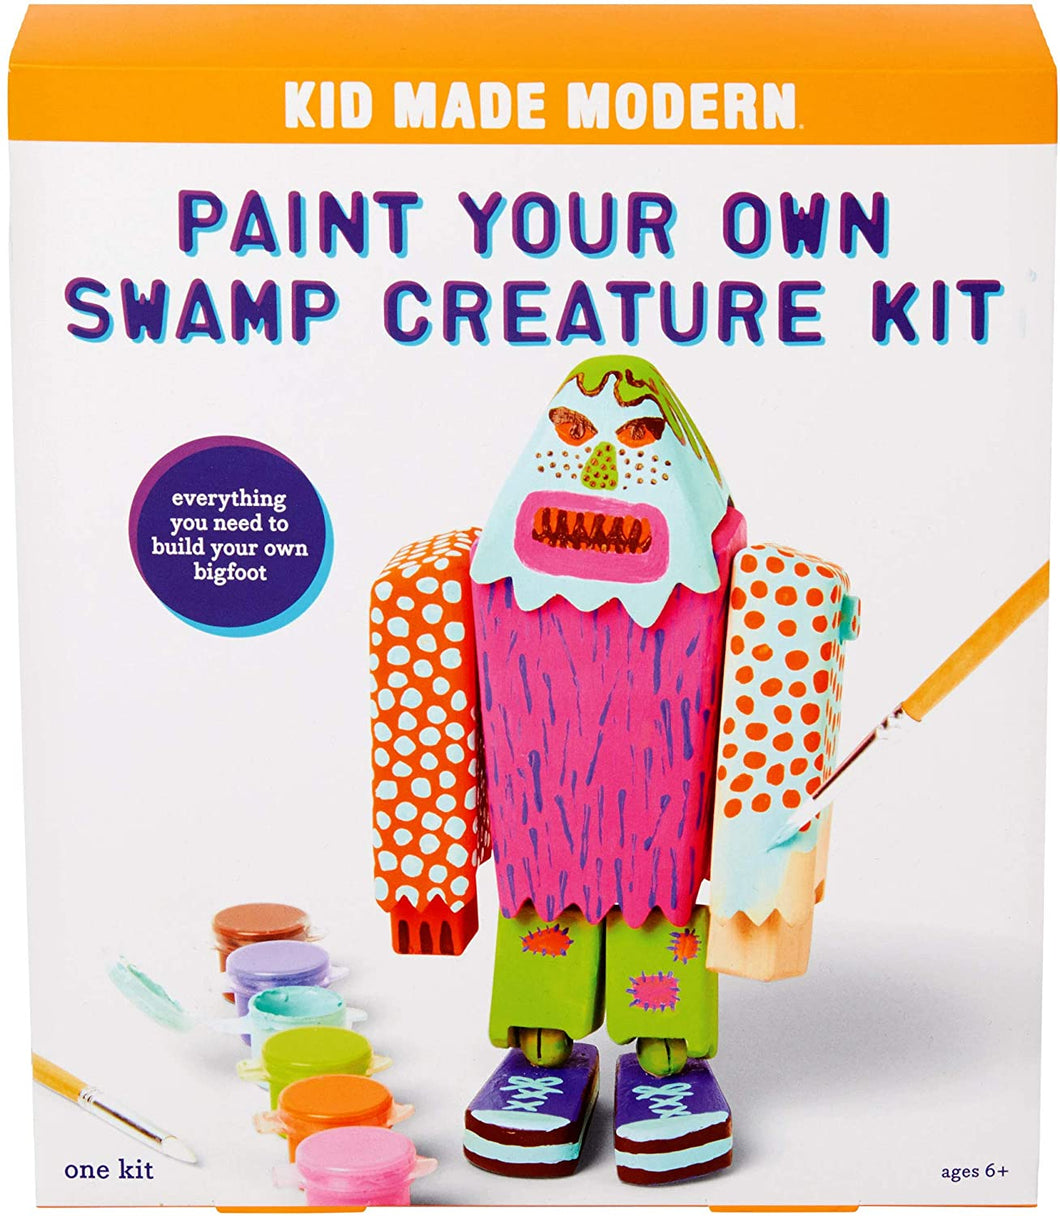 Kid Made Modern Paint Your Own Swamp Creature